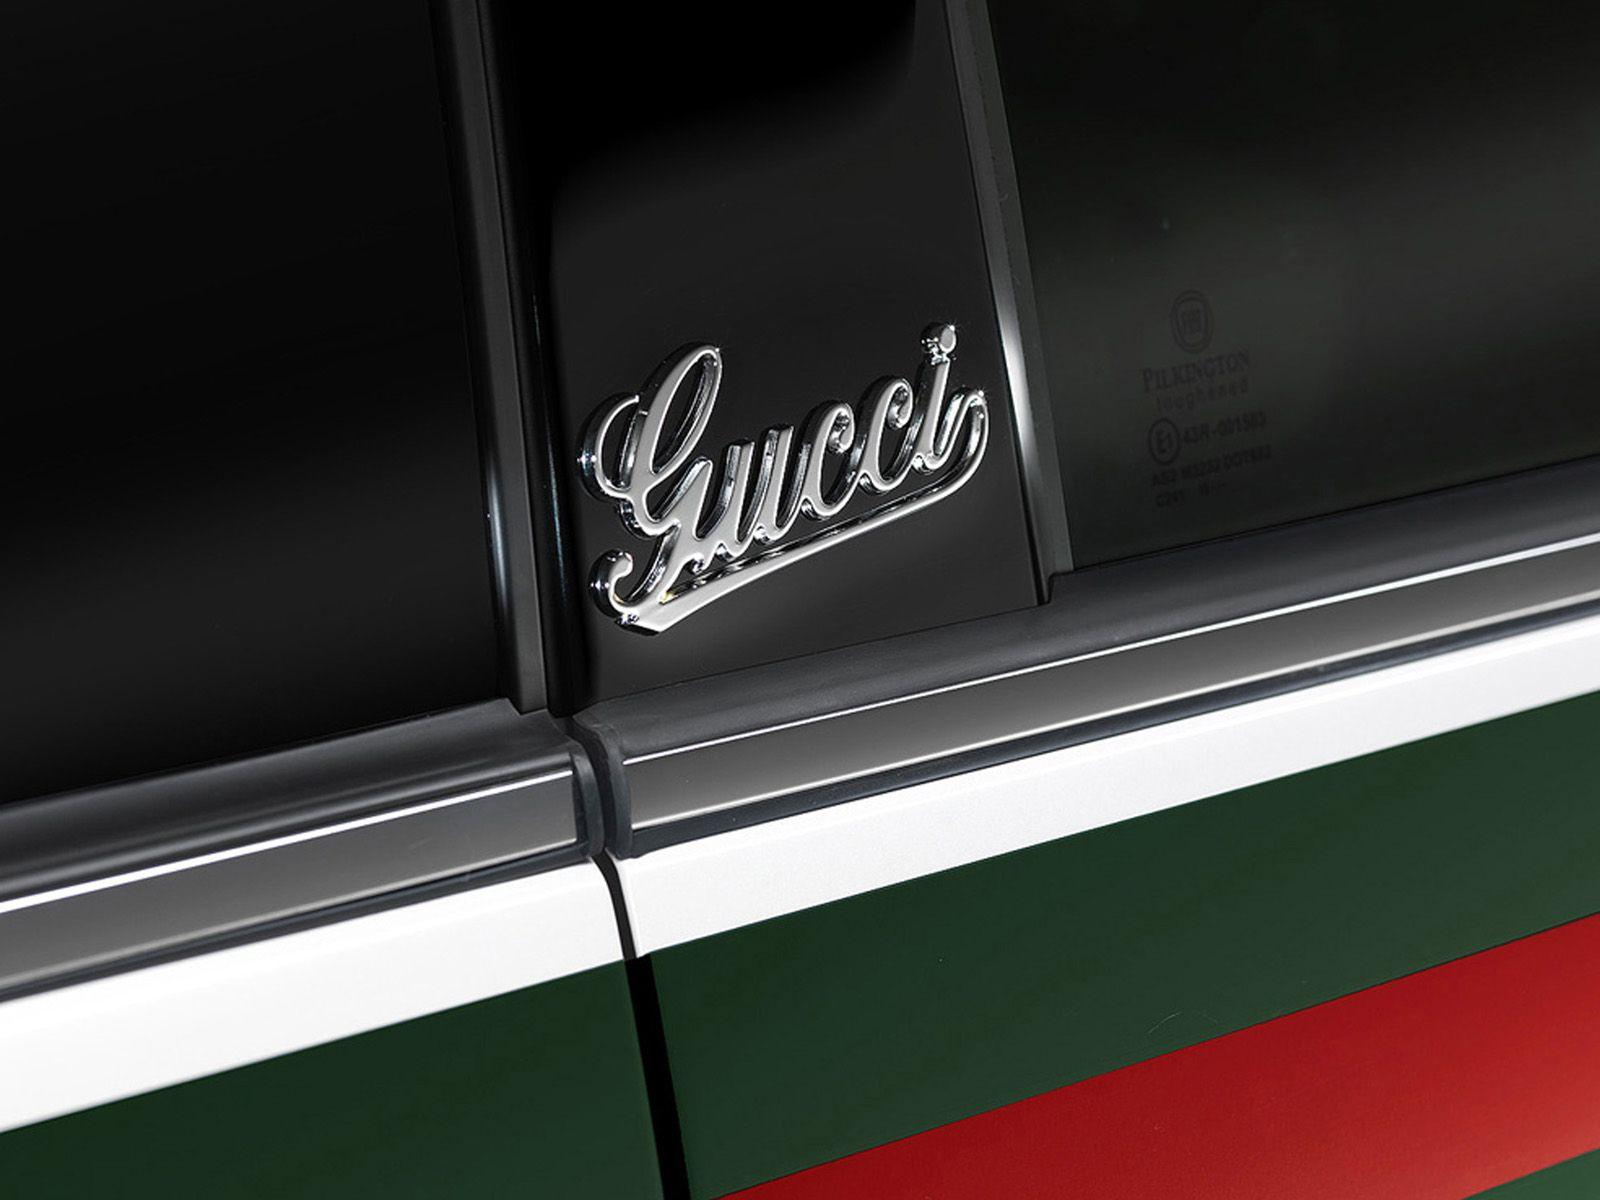 Fiat 500 by Gucci wallpapers | Fiat 500 by Gucci stock photos